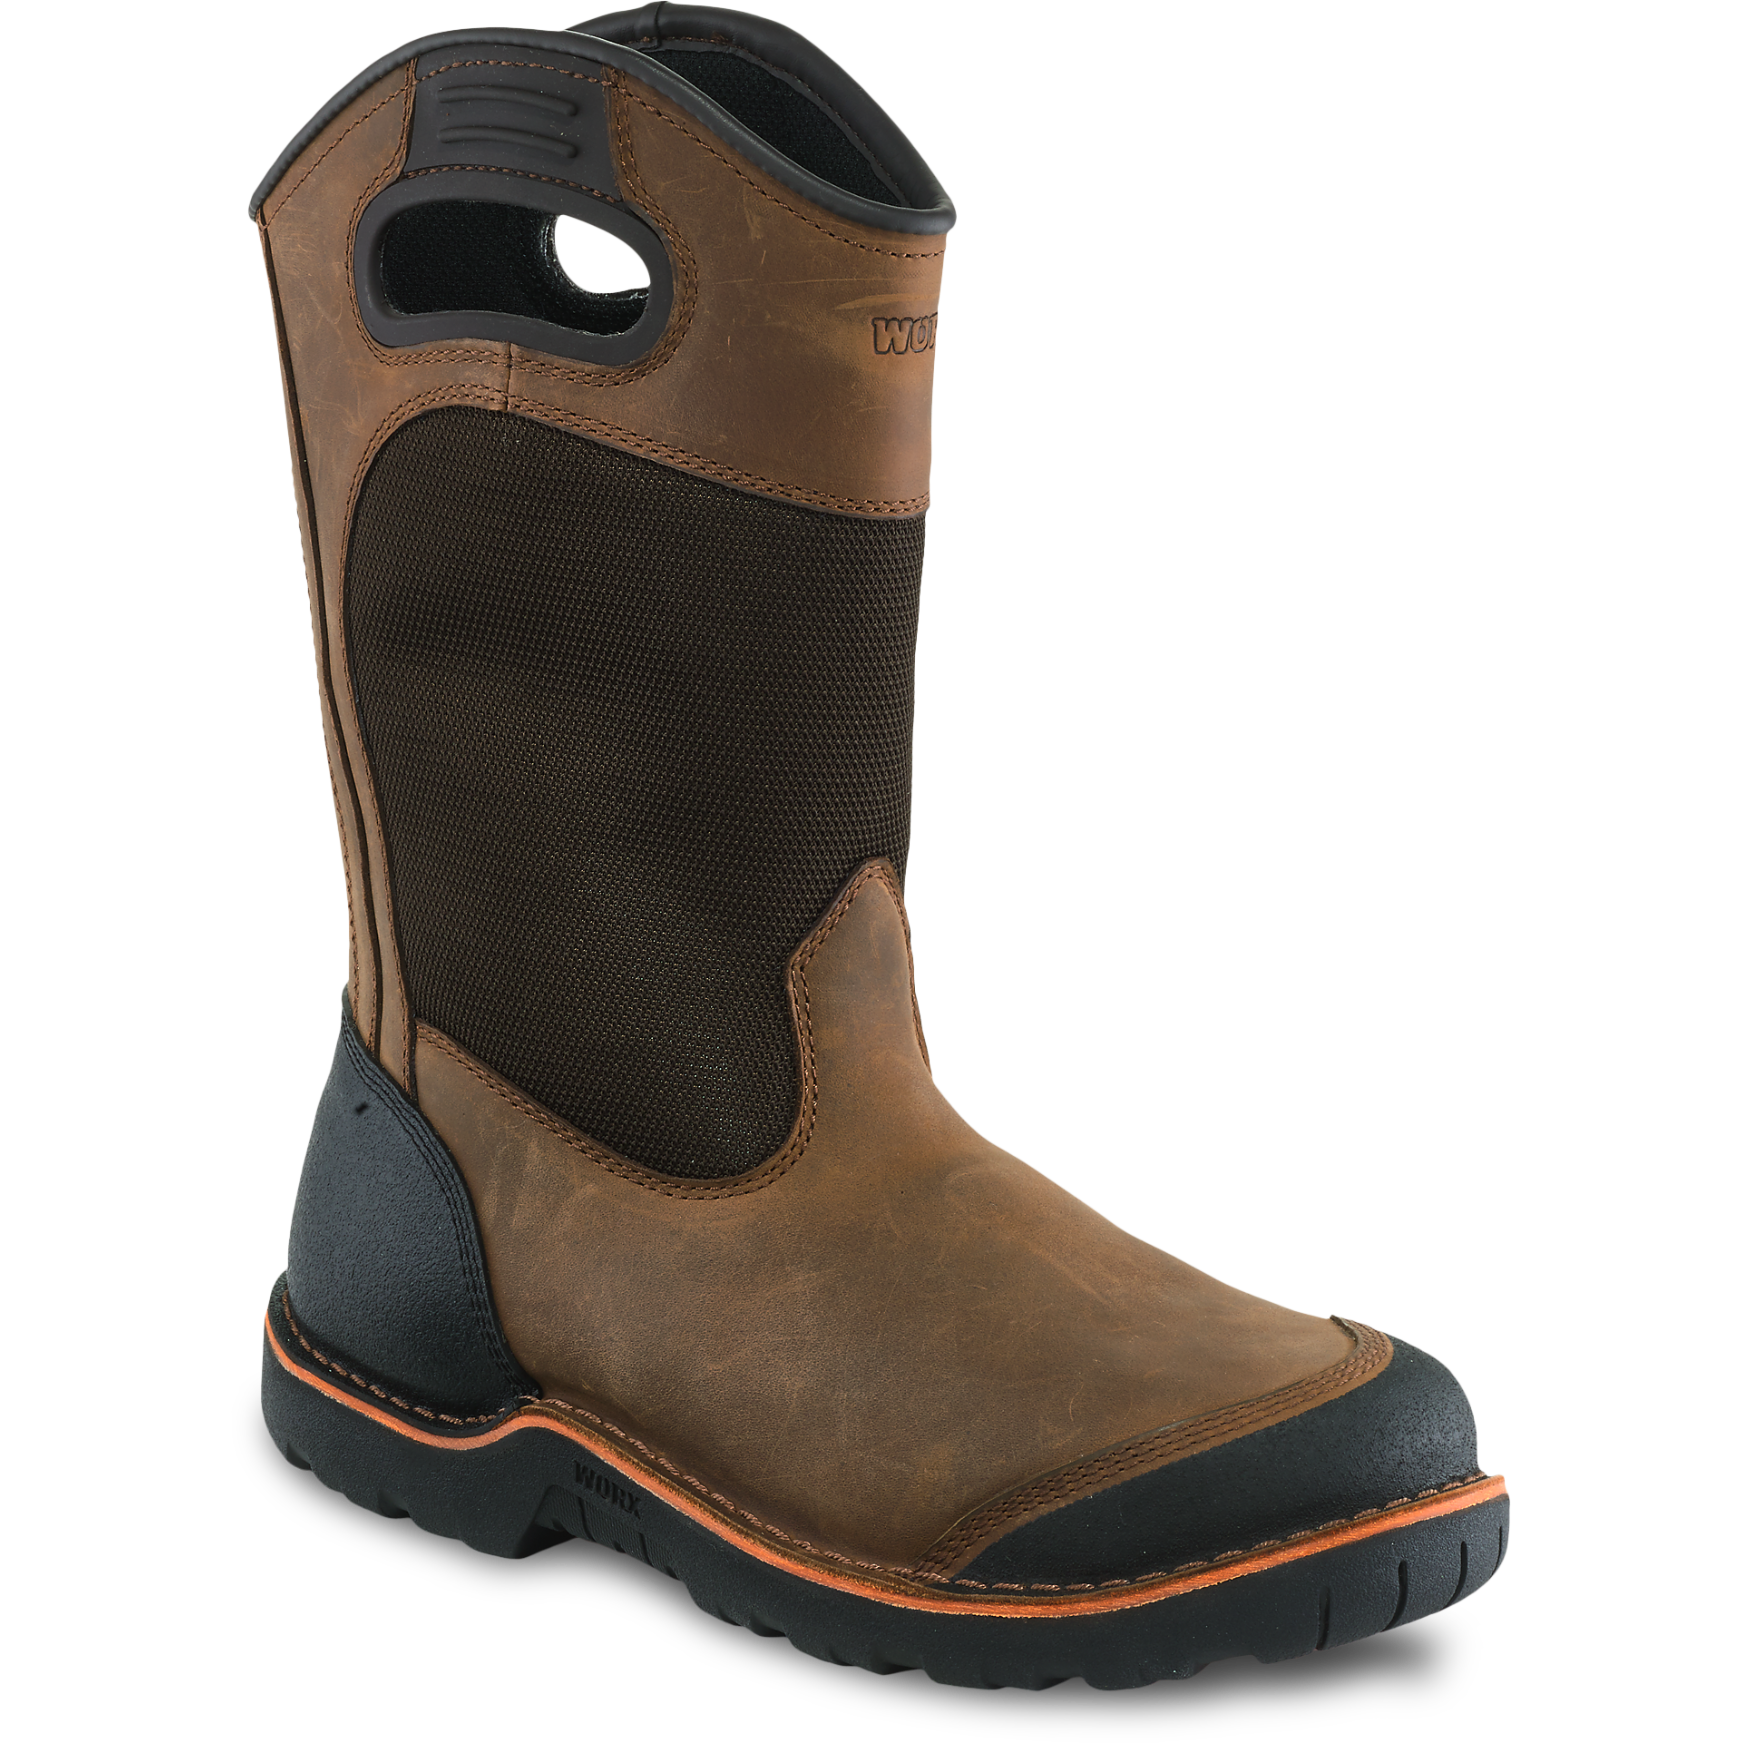 Worx 5715 - 11 Inch Pull On Boot Brown  Steel Toe - Electrical Hazard - HRO Heat Resistant  Click here for specifications